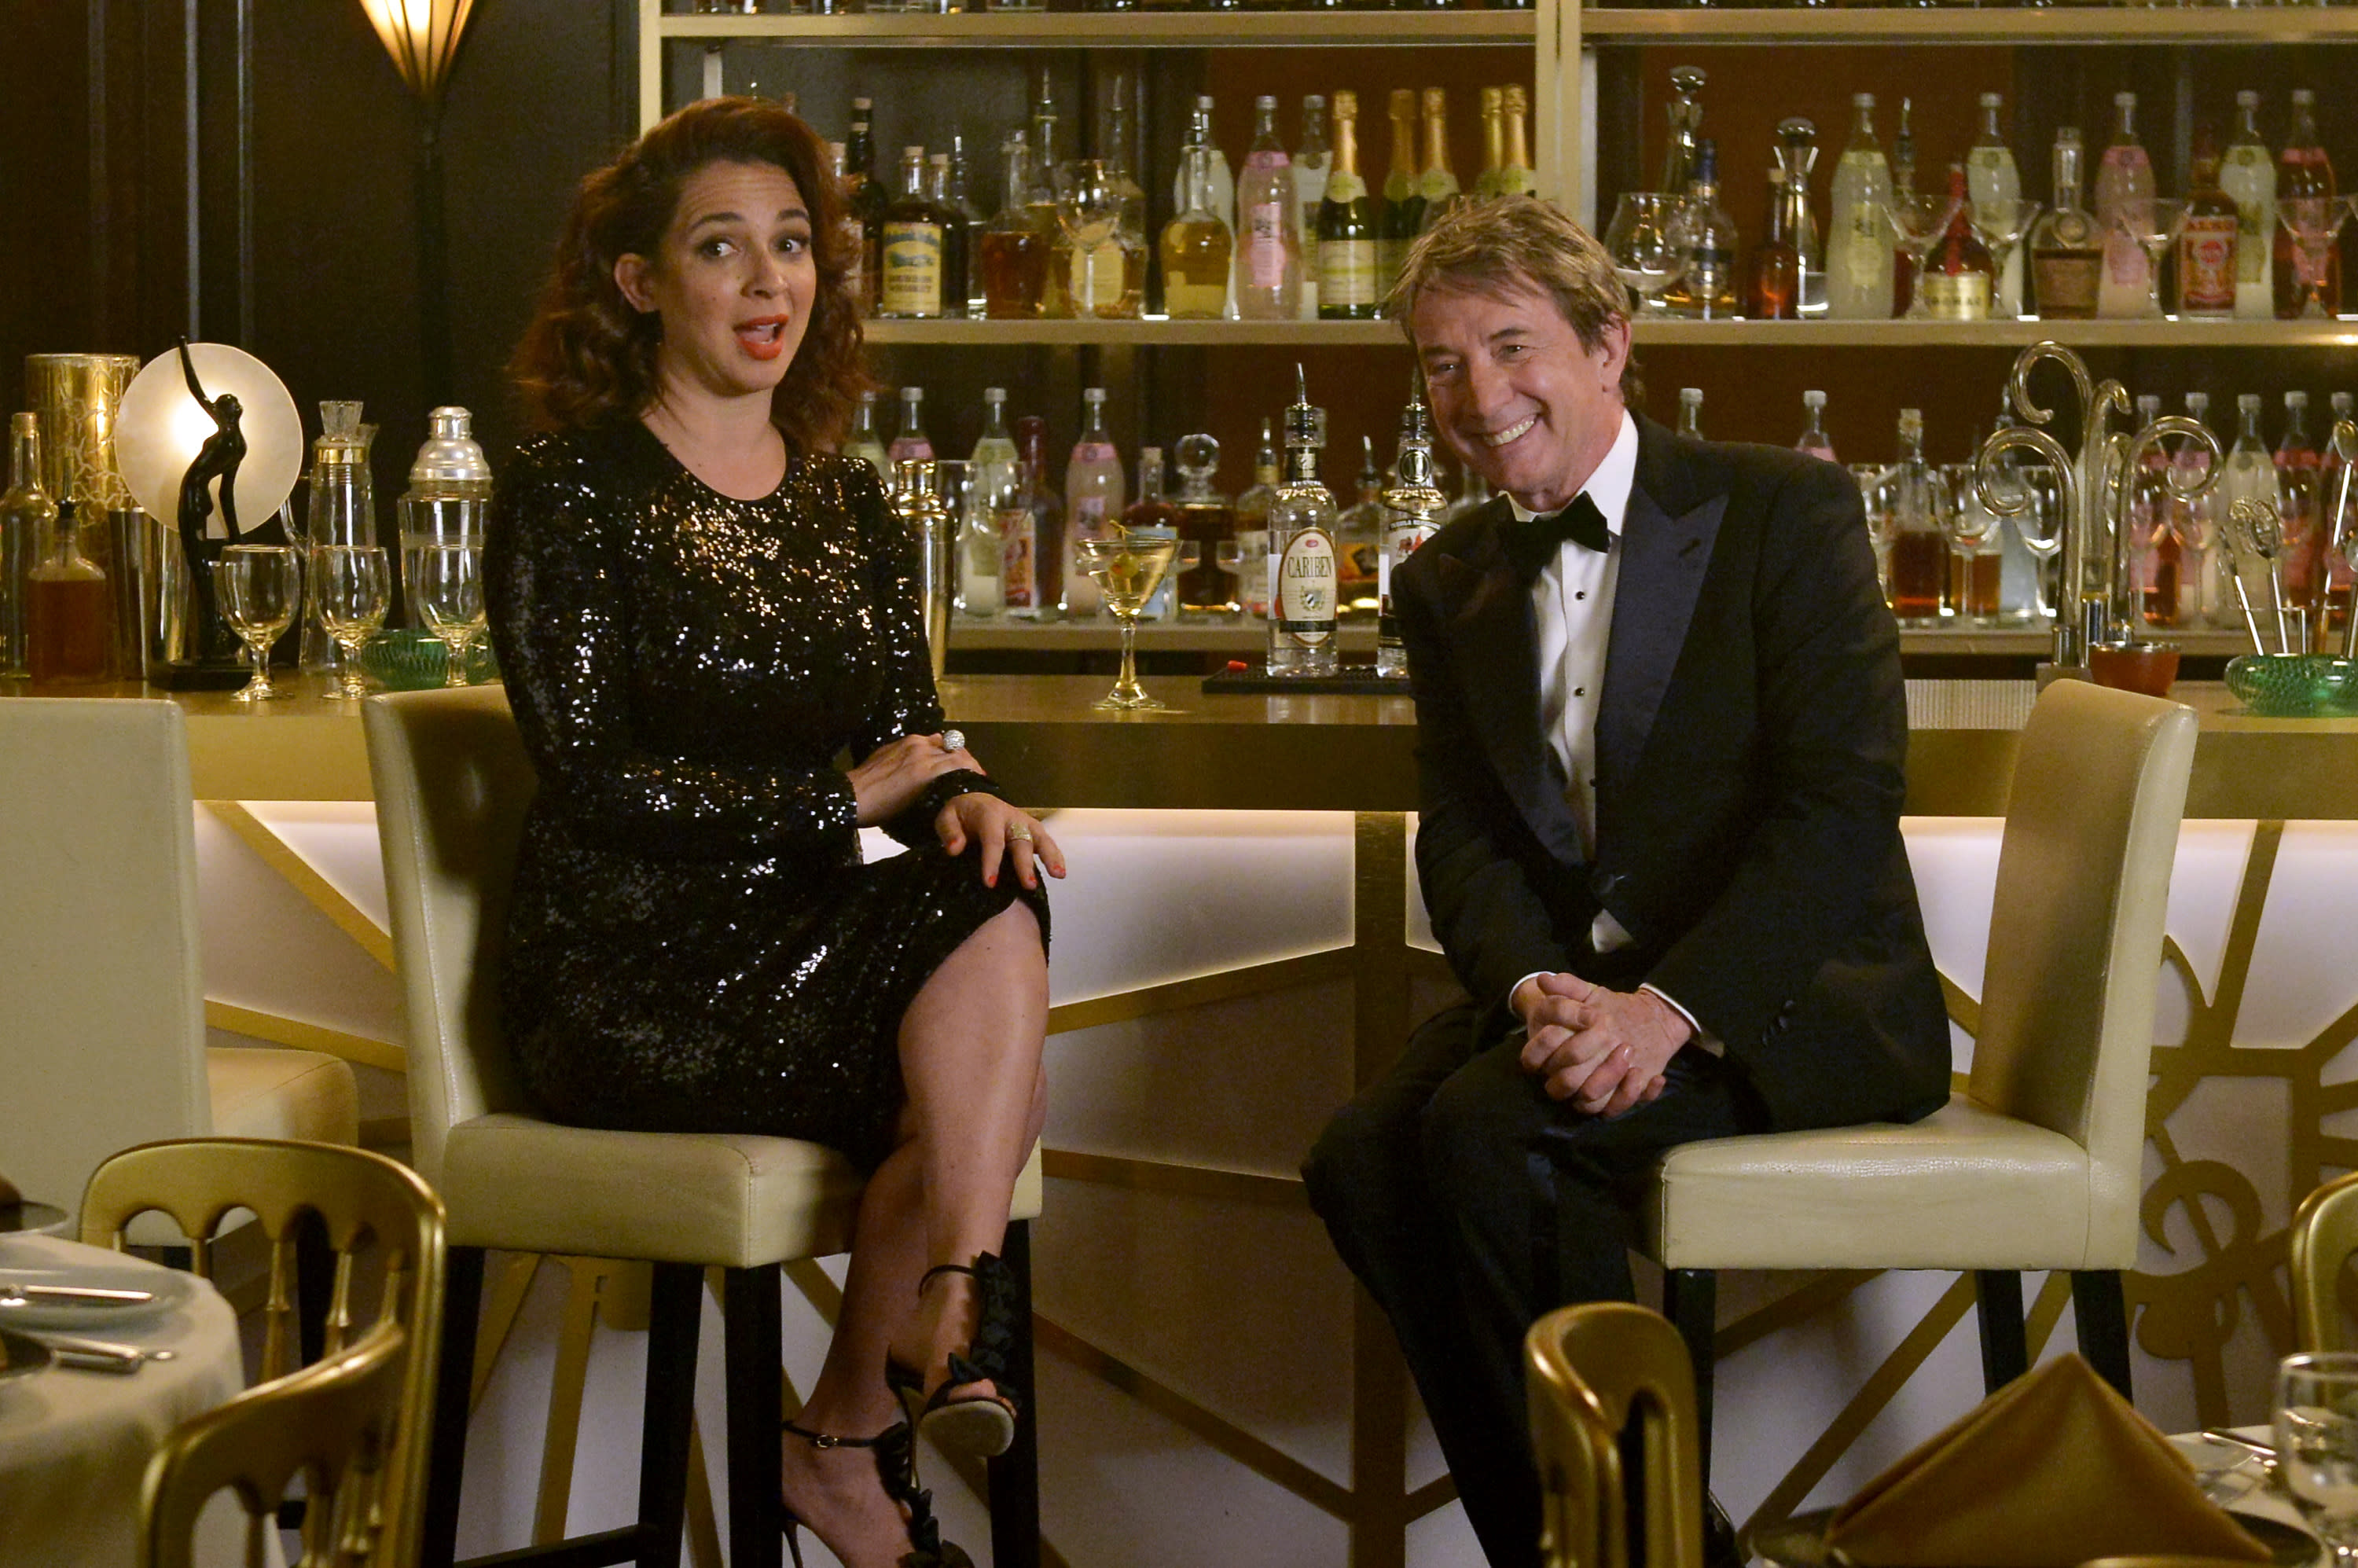 'Maya & Marty' aims to show variety still the spice of life